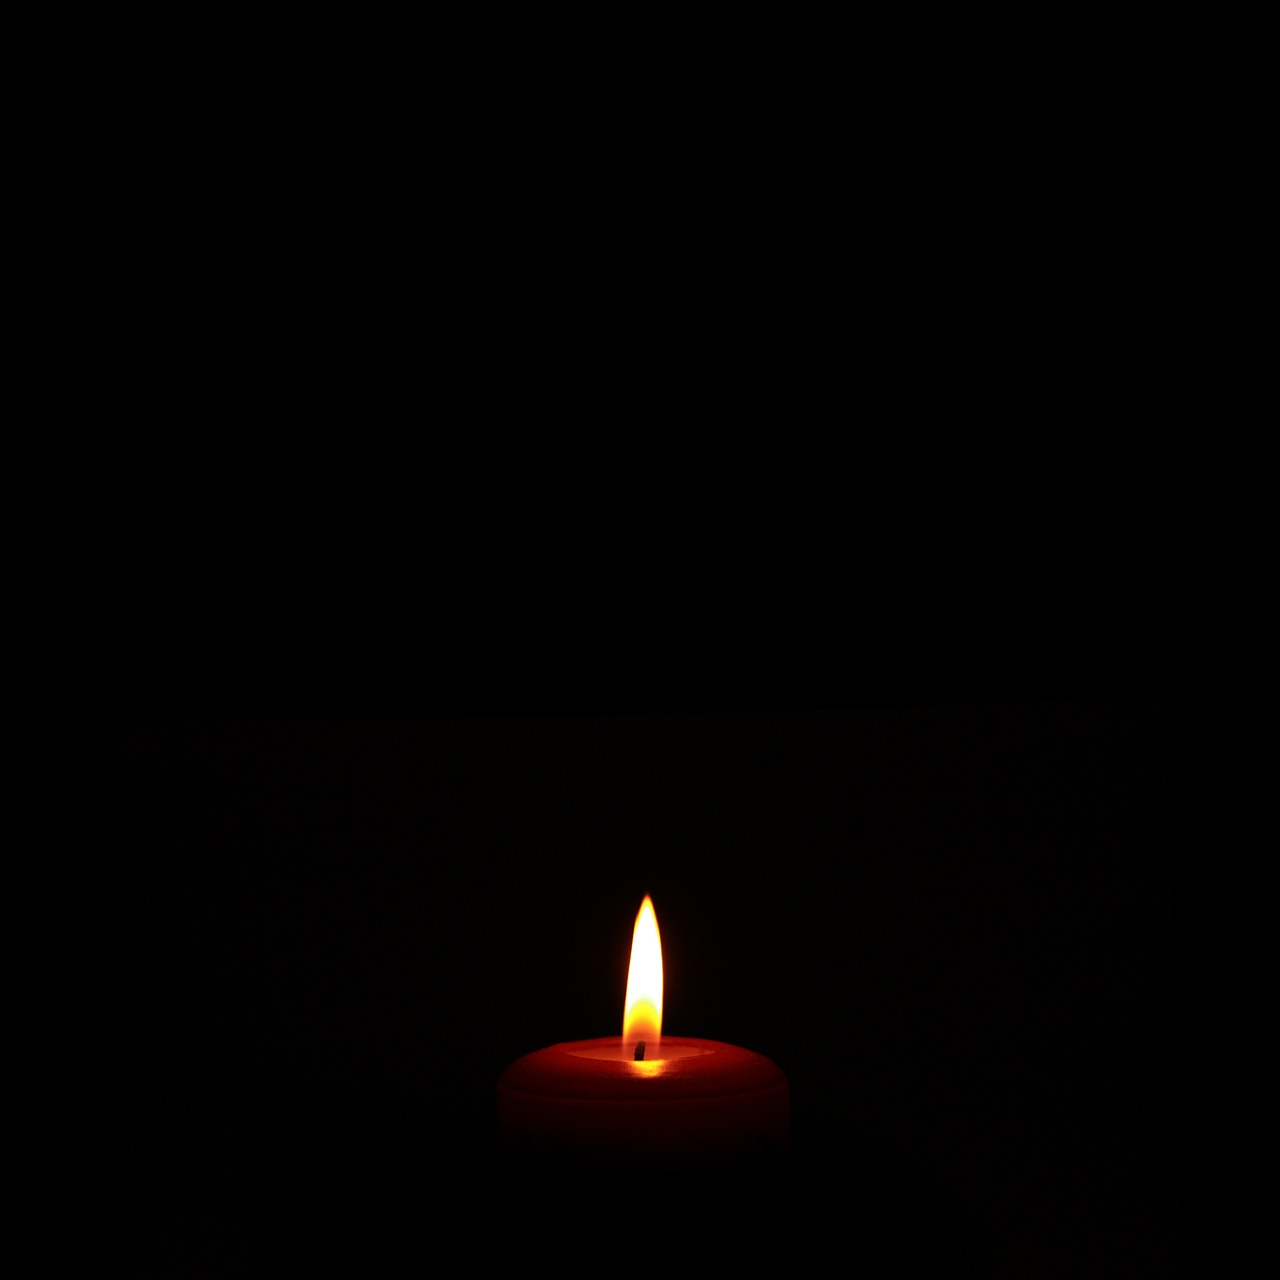 candle-647197_1280